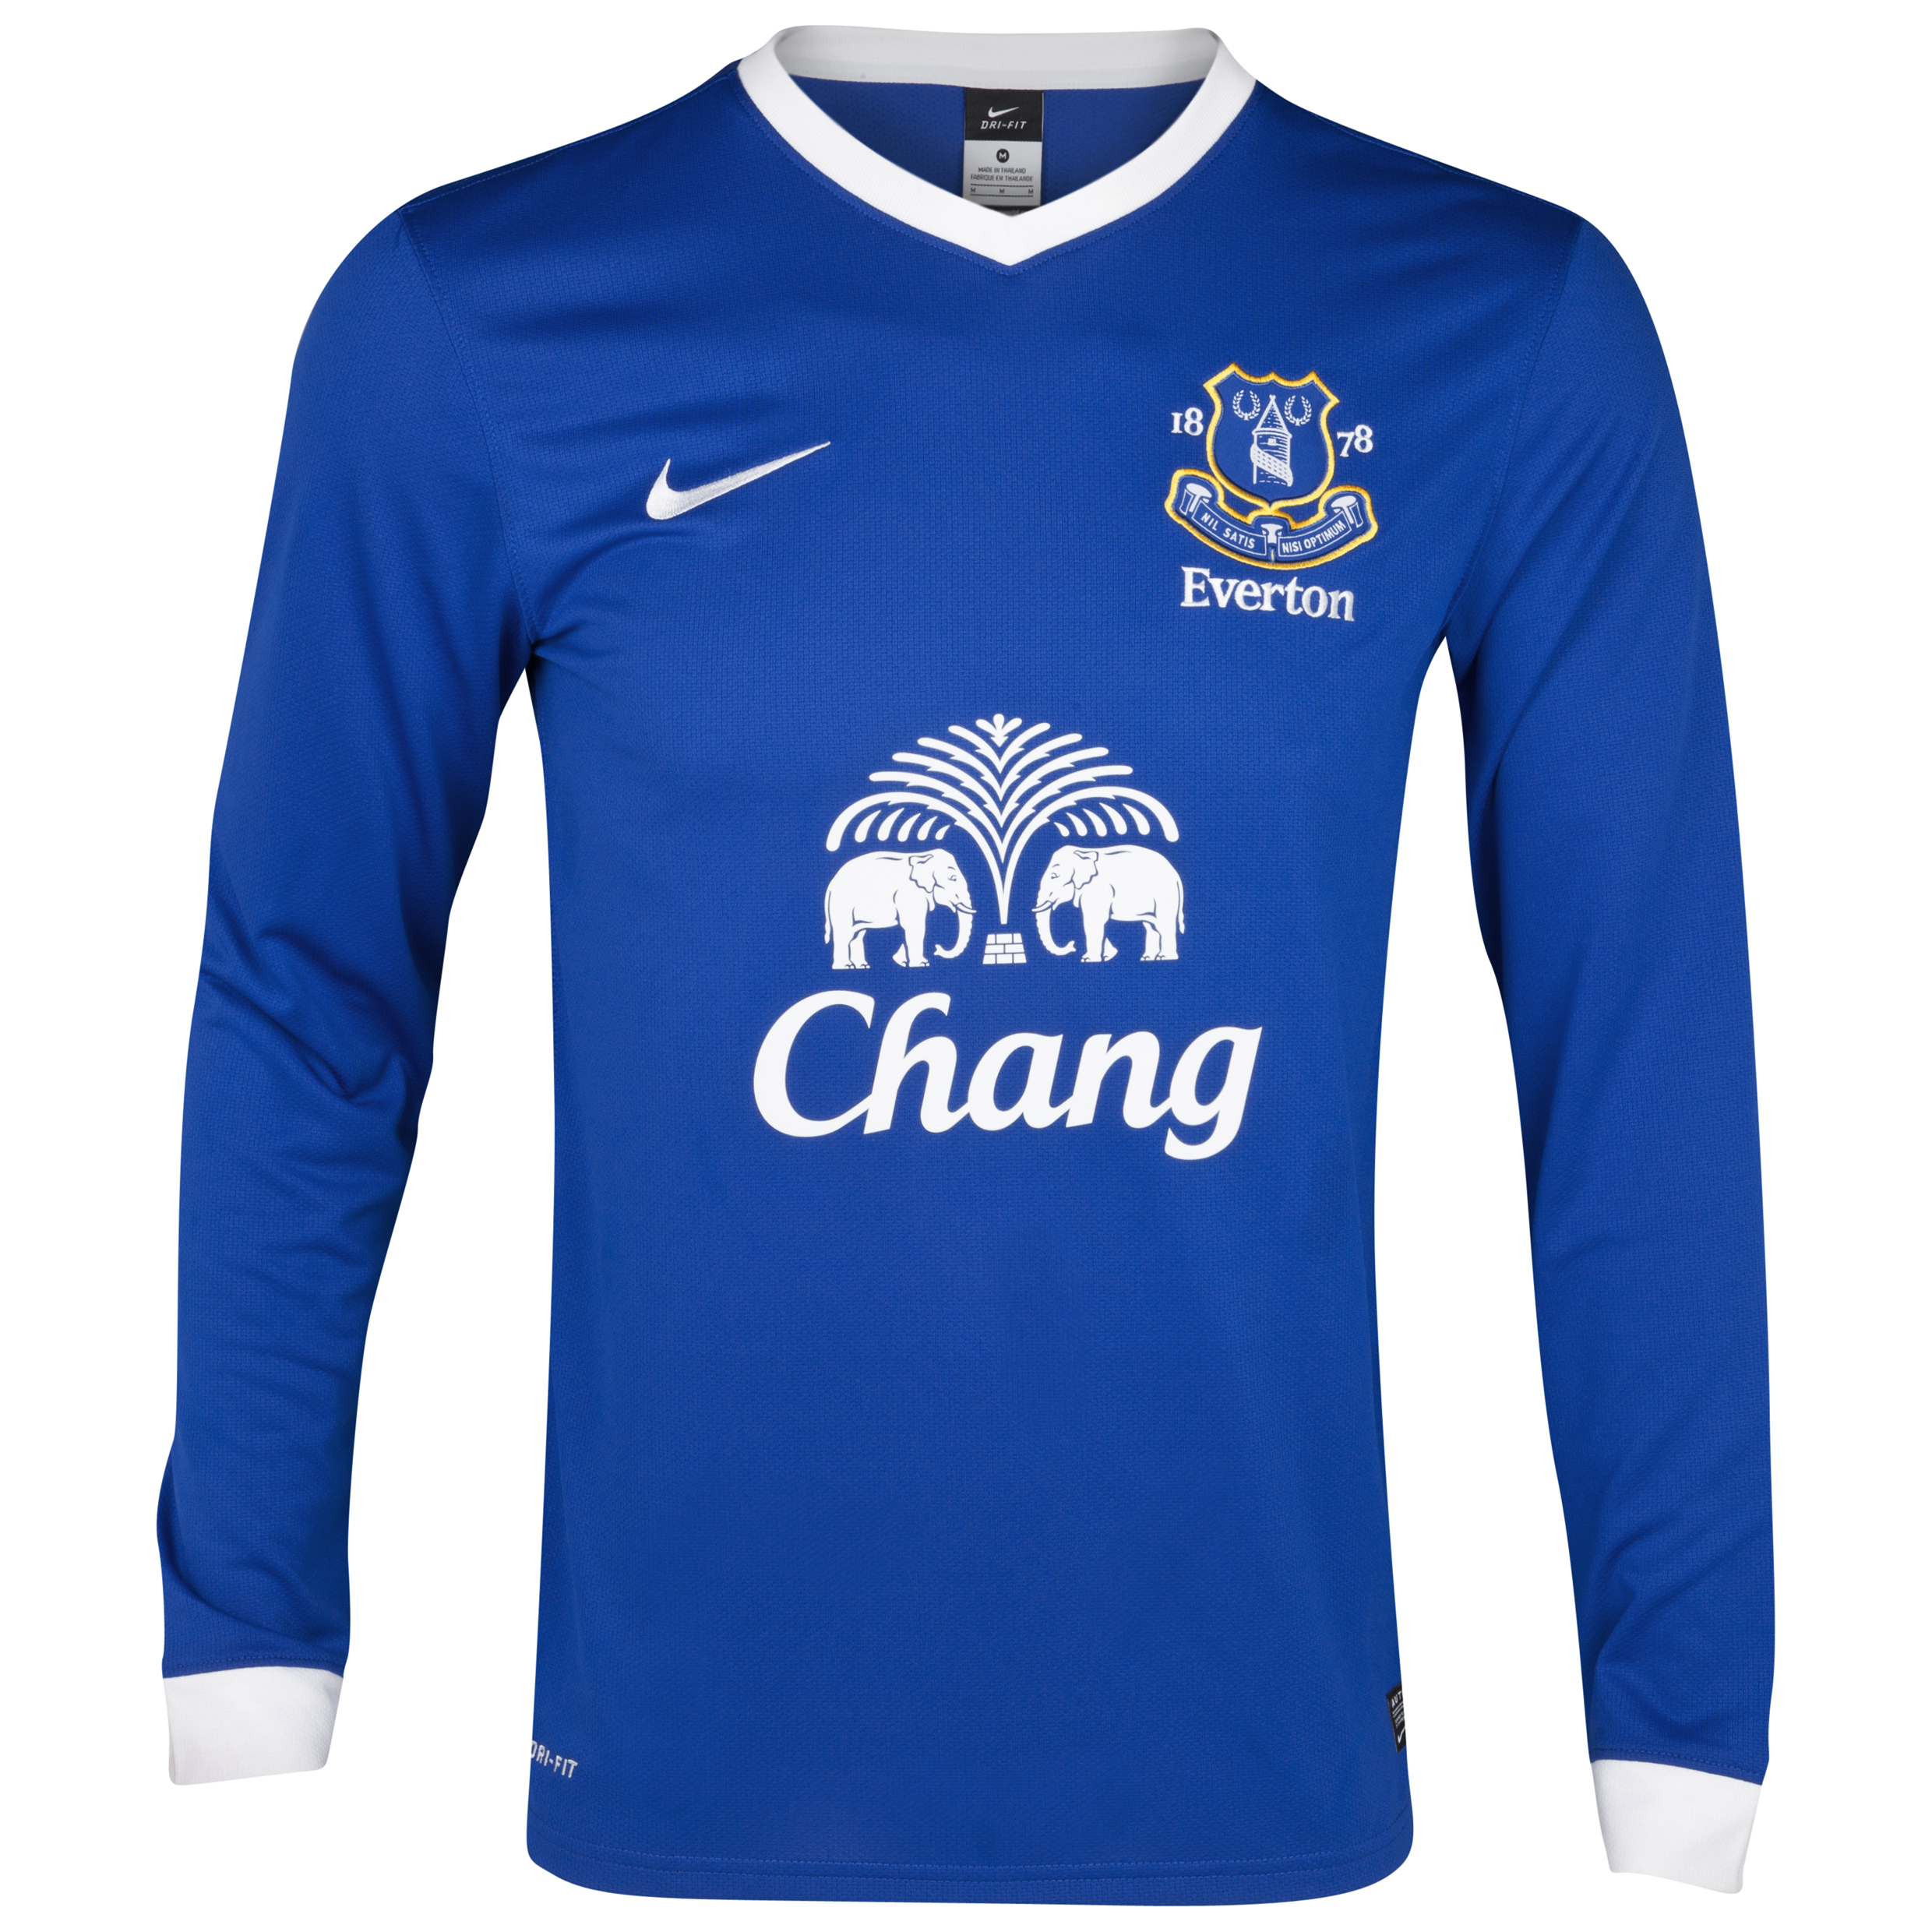 Everton Home Shirt 2012/13 - Long Sleeved